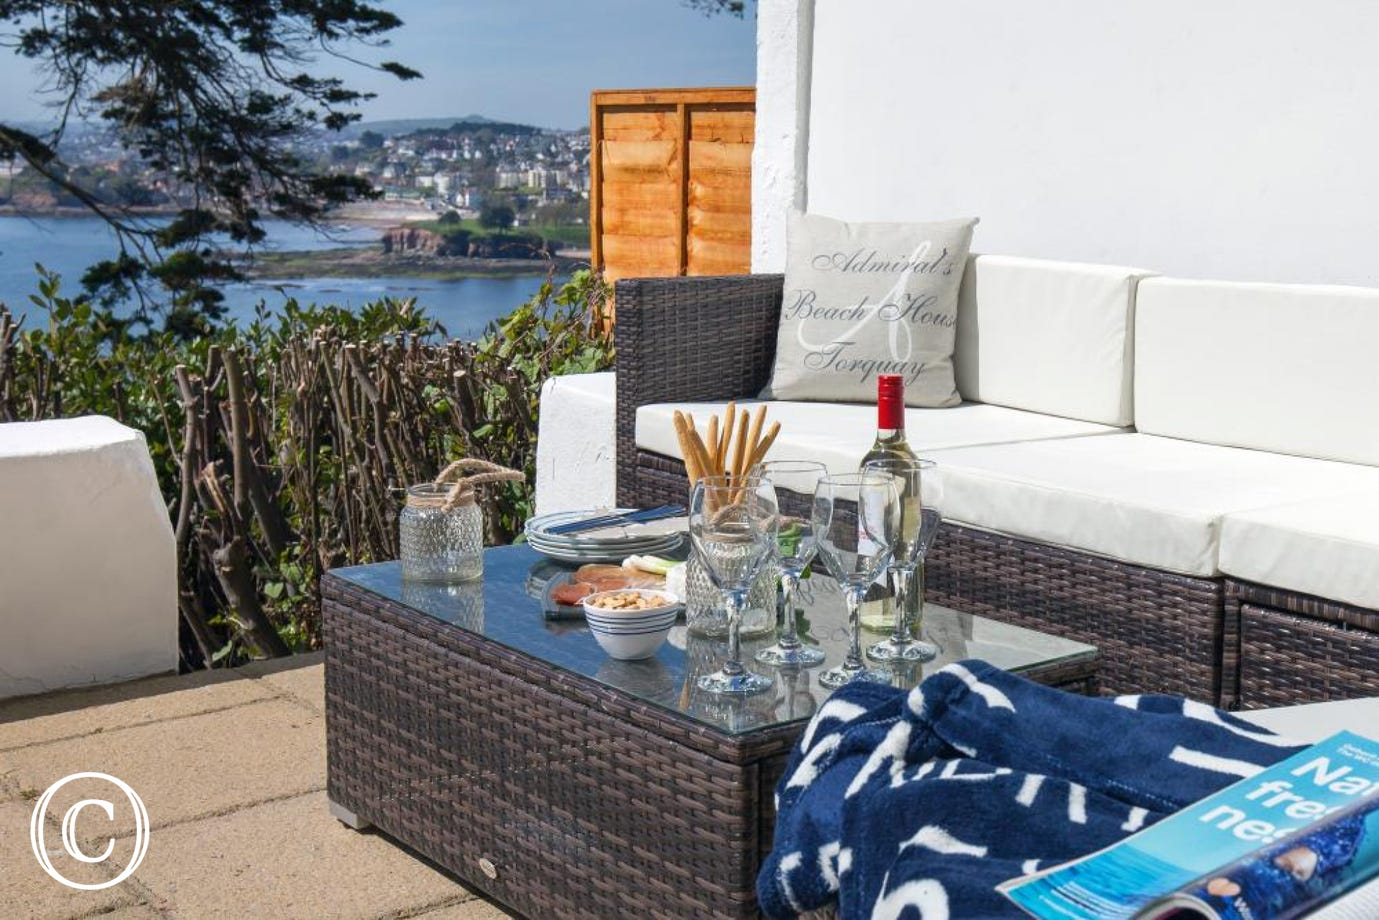 The stunning views from the sunny terrace at The Admiral's Beach House Sea View Apartment in Torquay